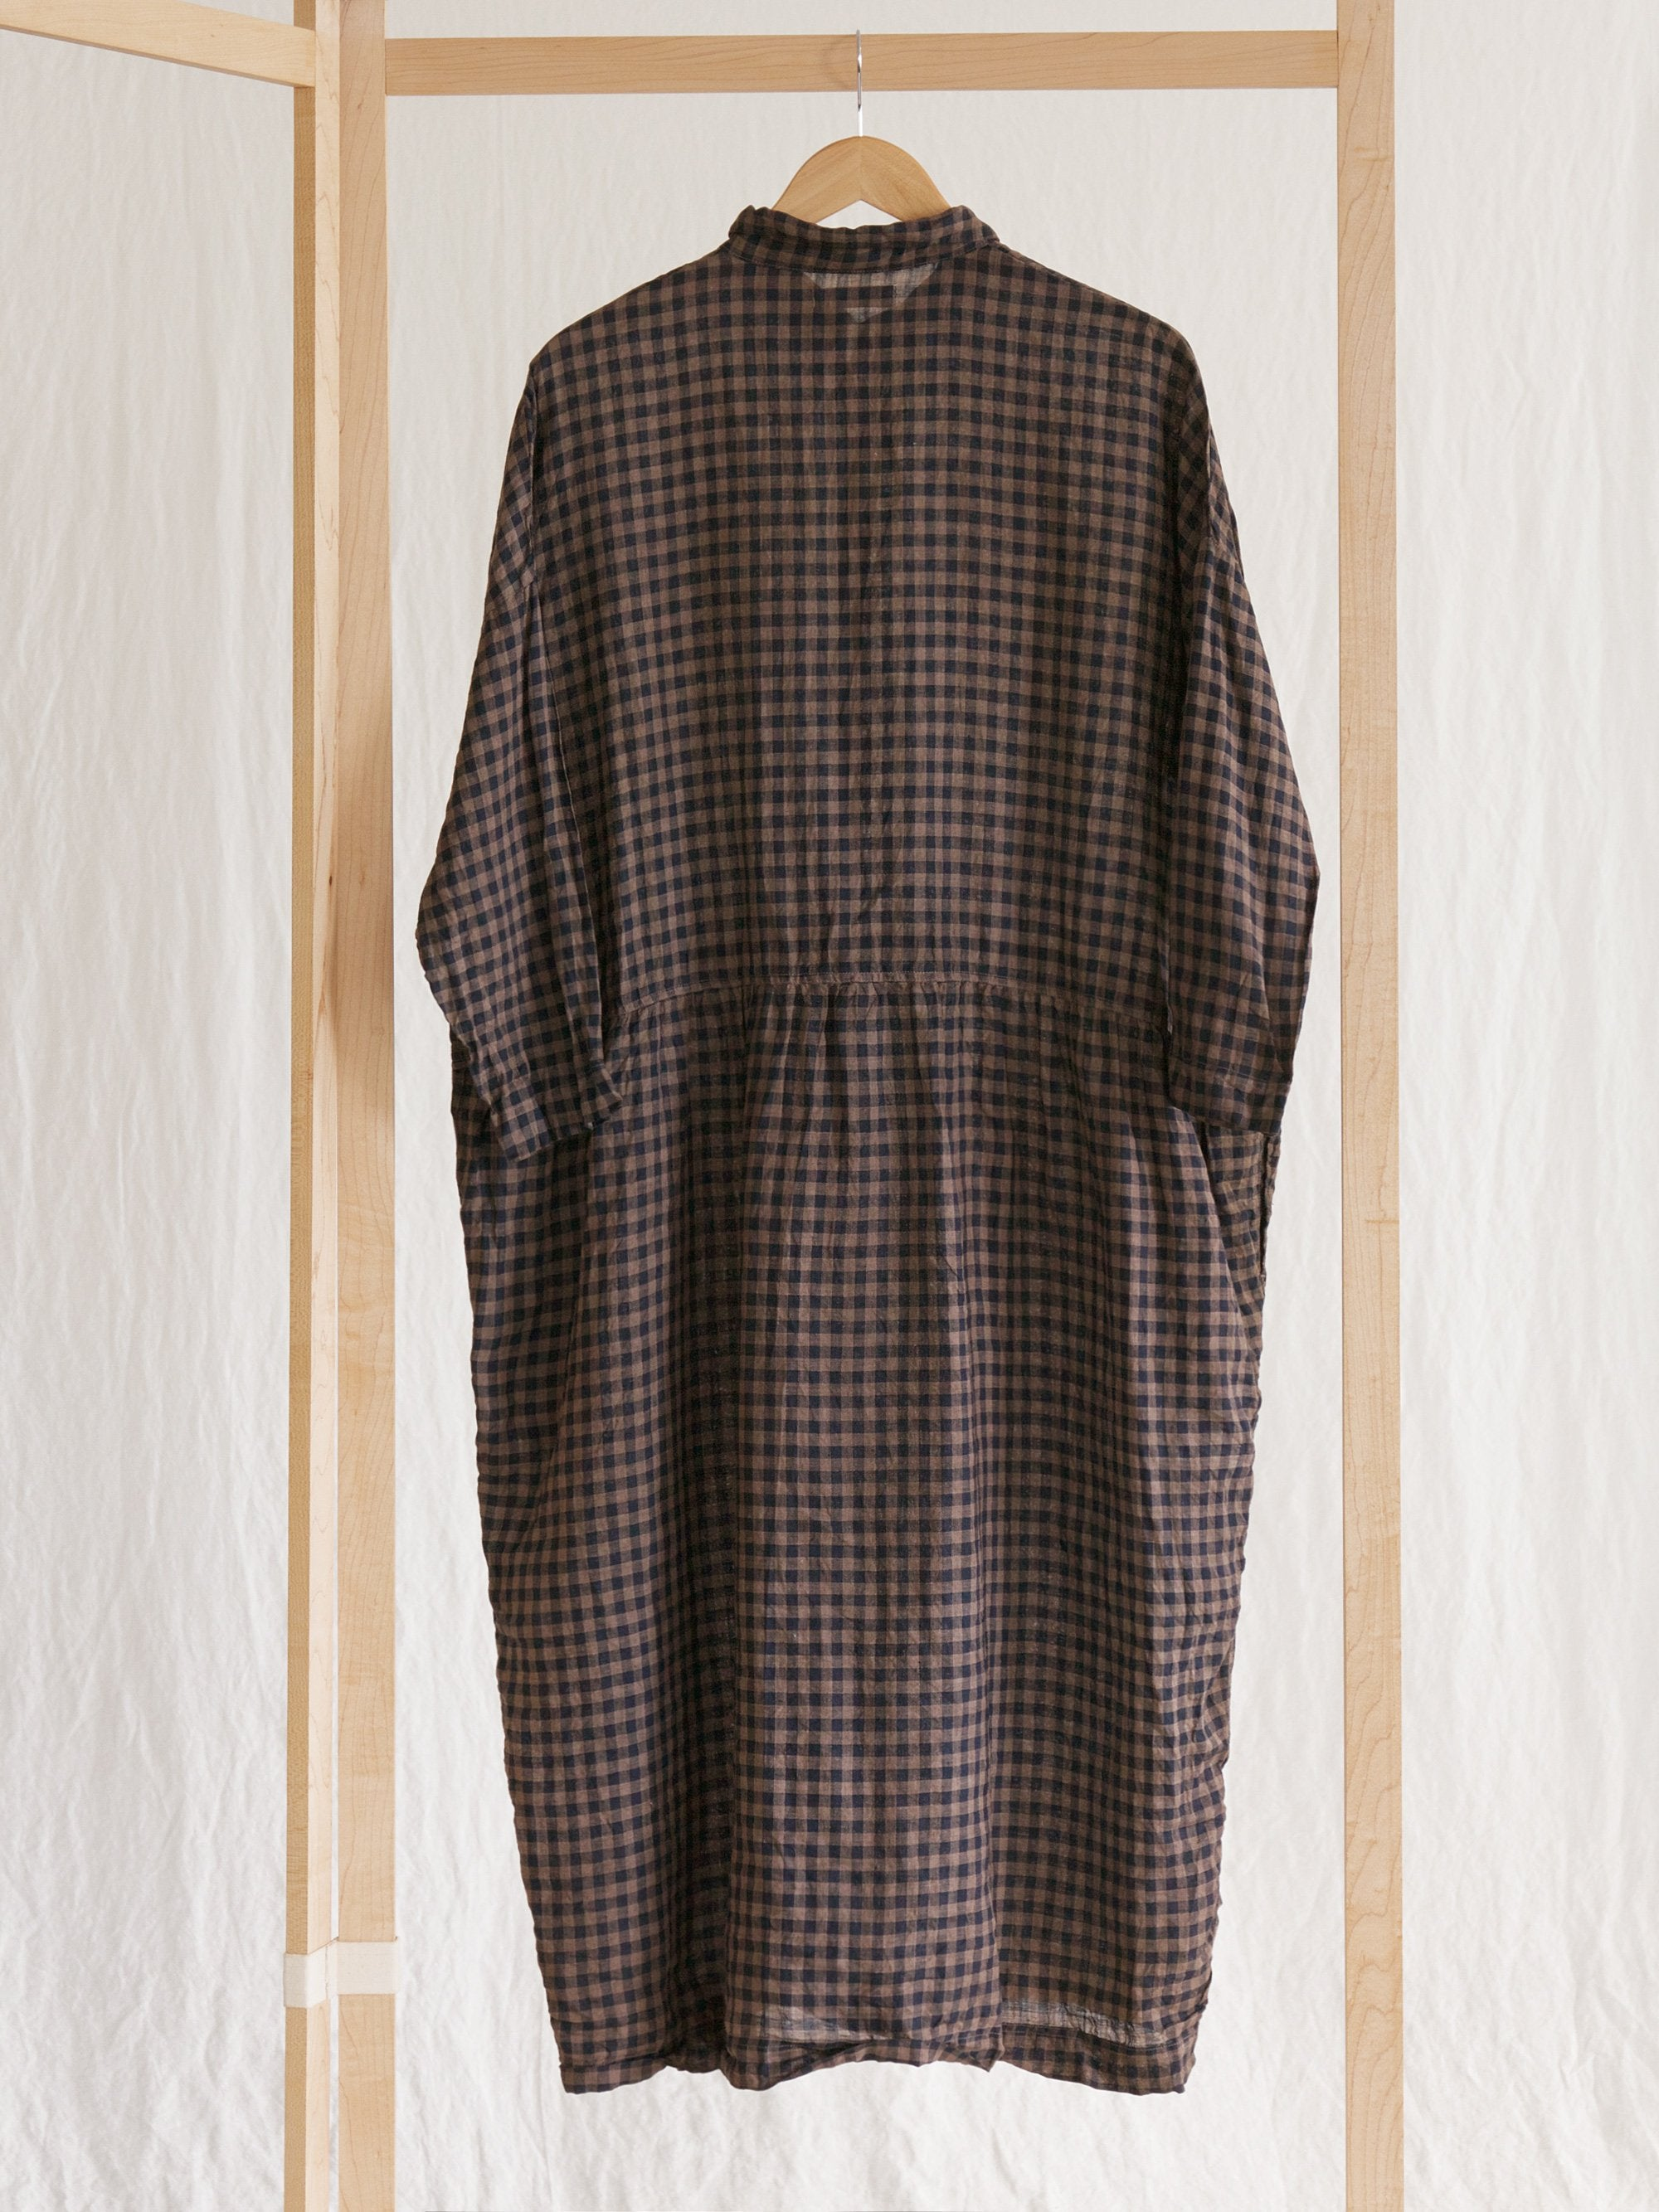 Namu Shop - Ichi Antiquites Linen Gingham Mud Handdyed Gather Dress